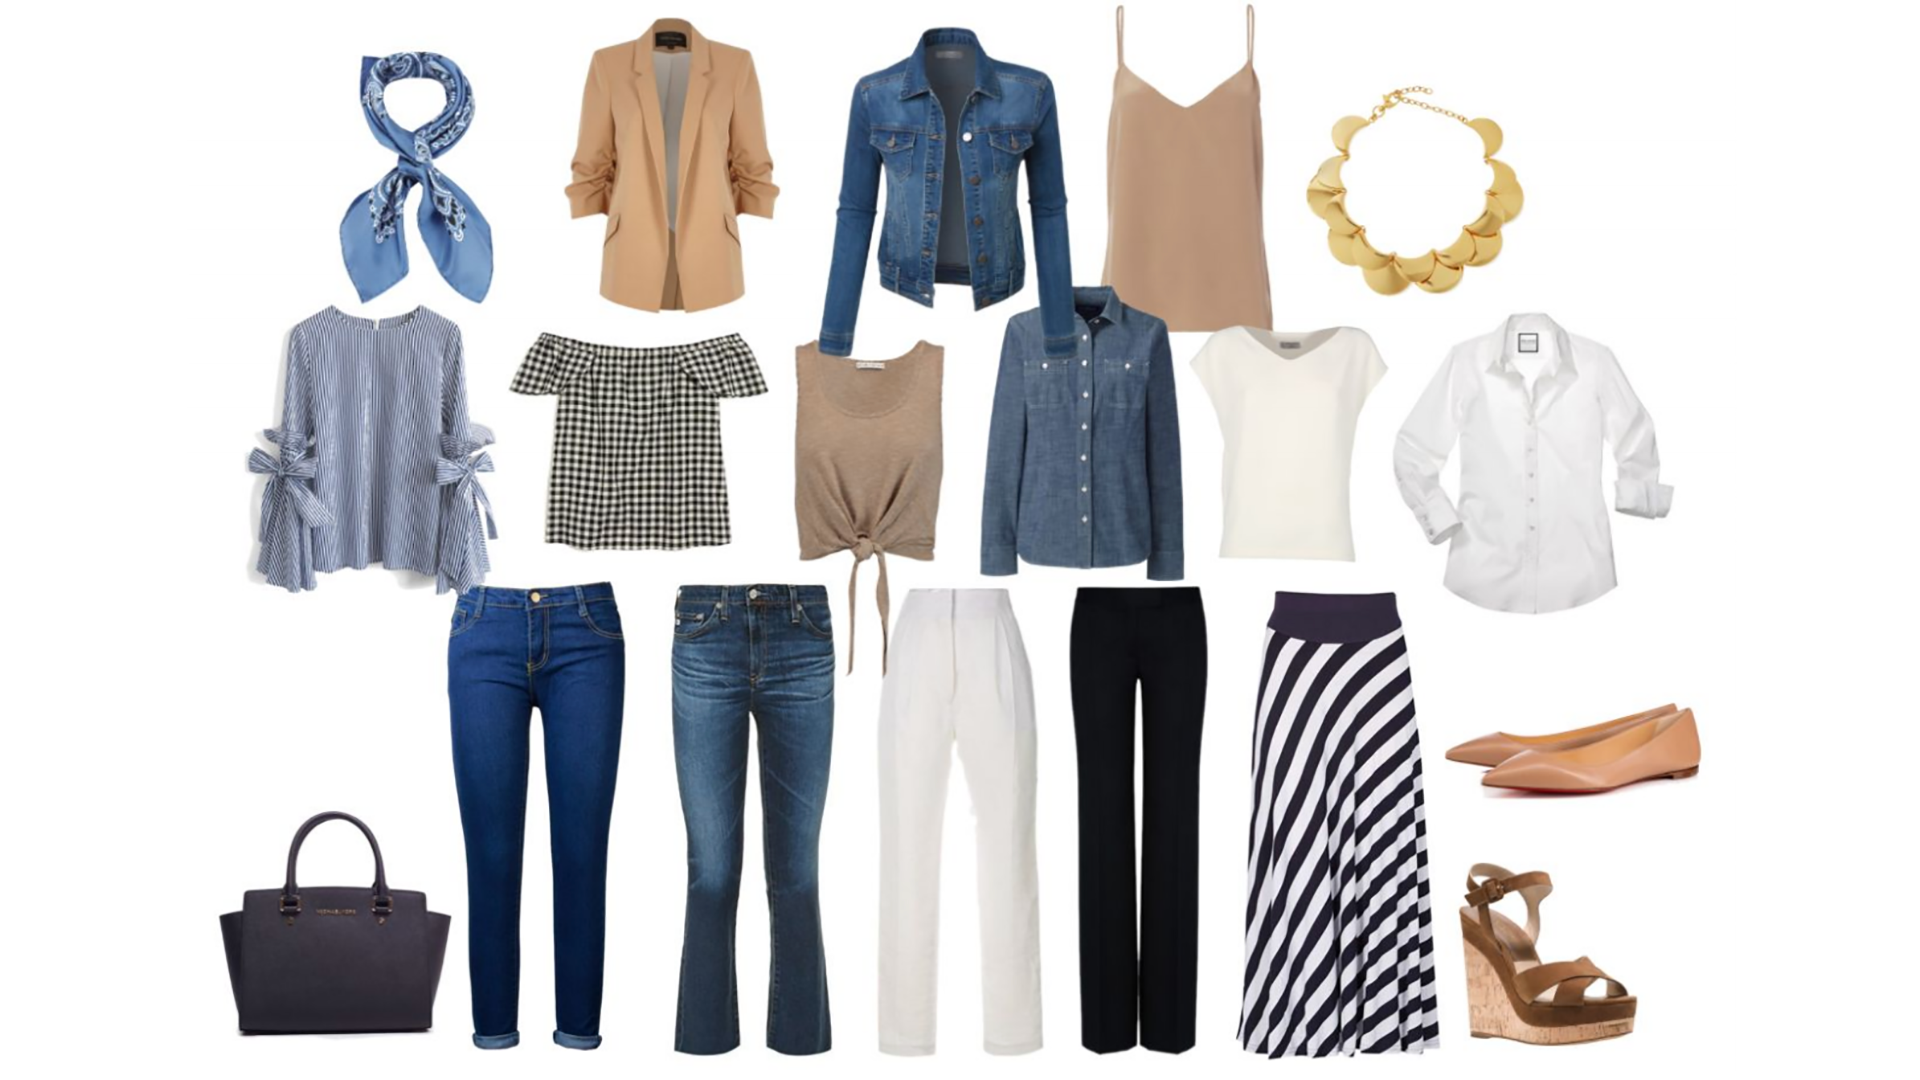 How To Create An All-Neutrals Capsule Wardrobe